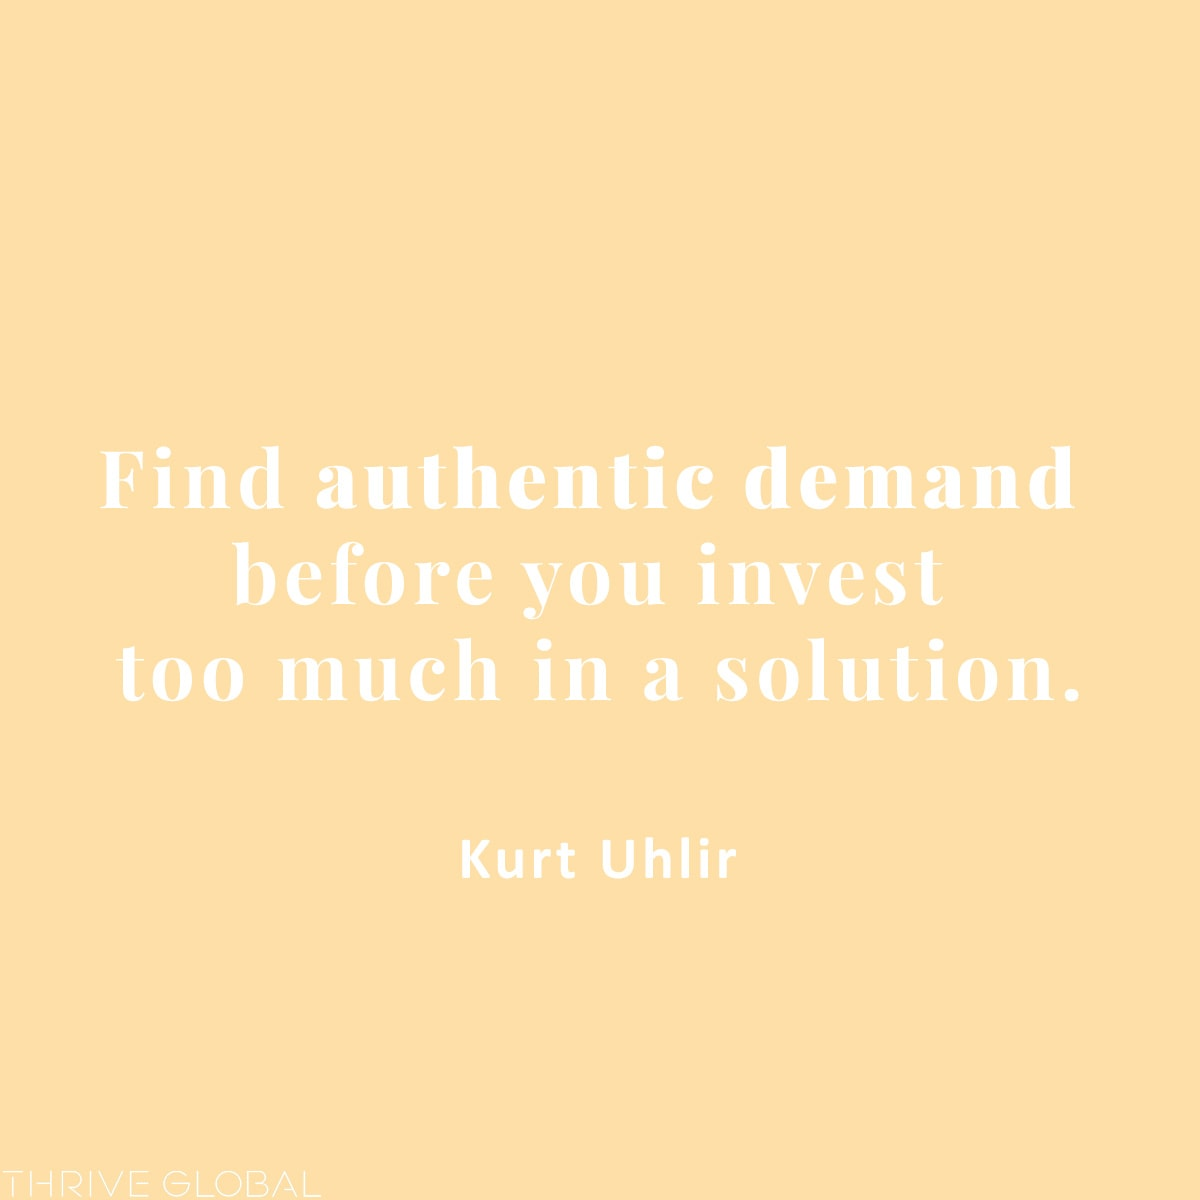 Find authentic demand before you invest too much in a solution.